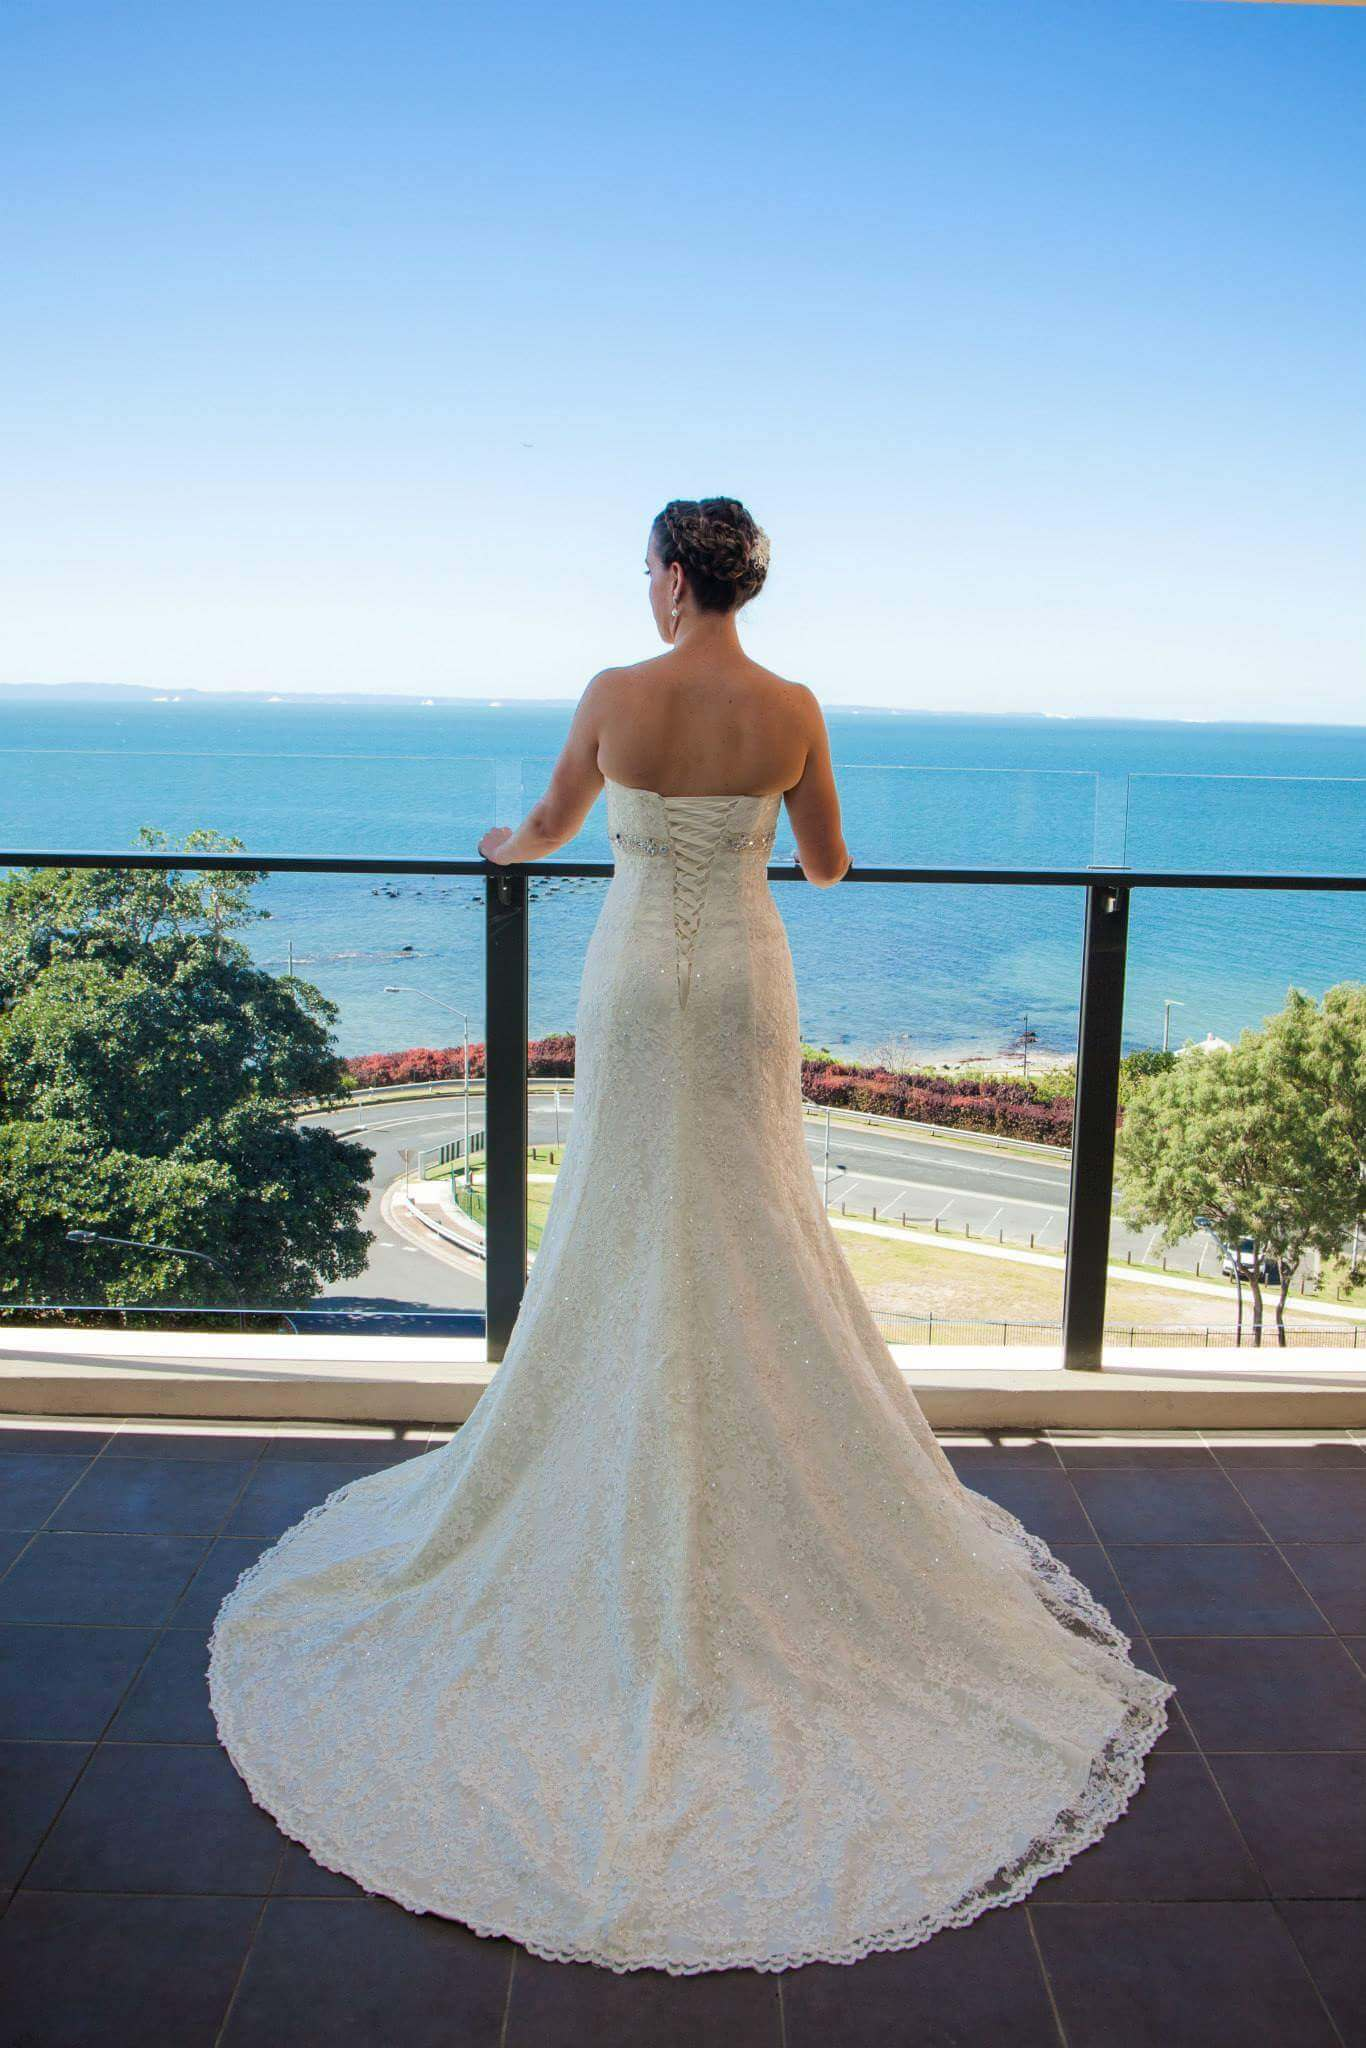 Luv Bridal – Size 6 Aline dress | Second hand wedding dresses Mansfield - Size 6